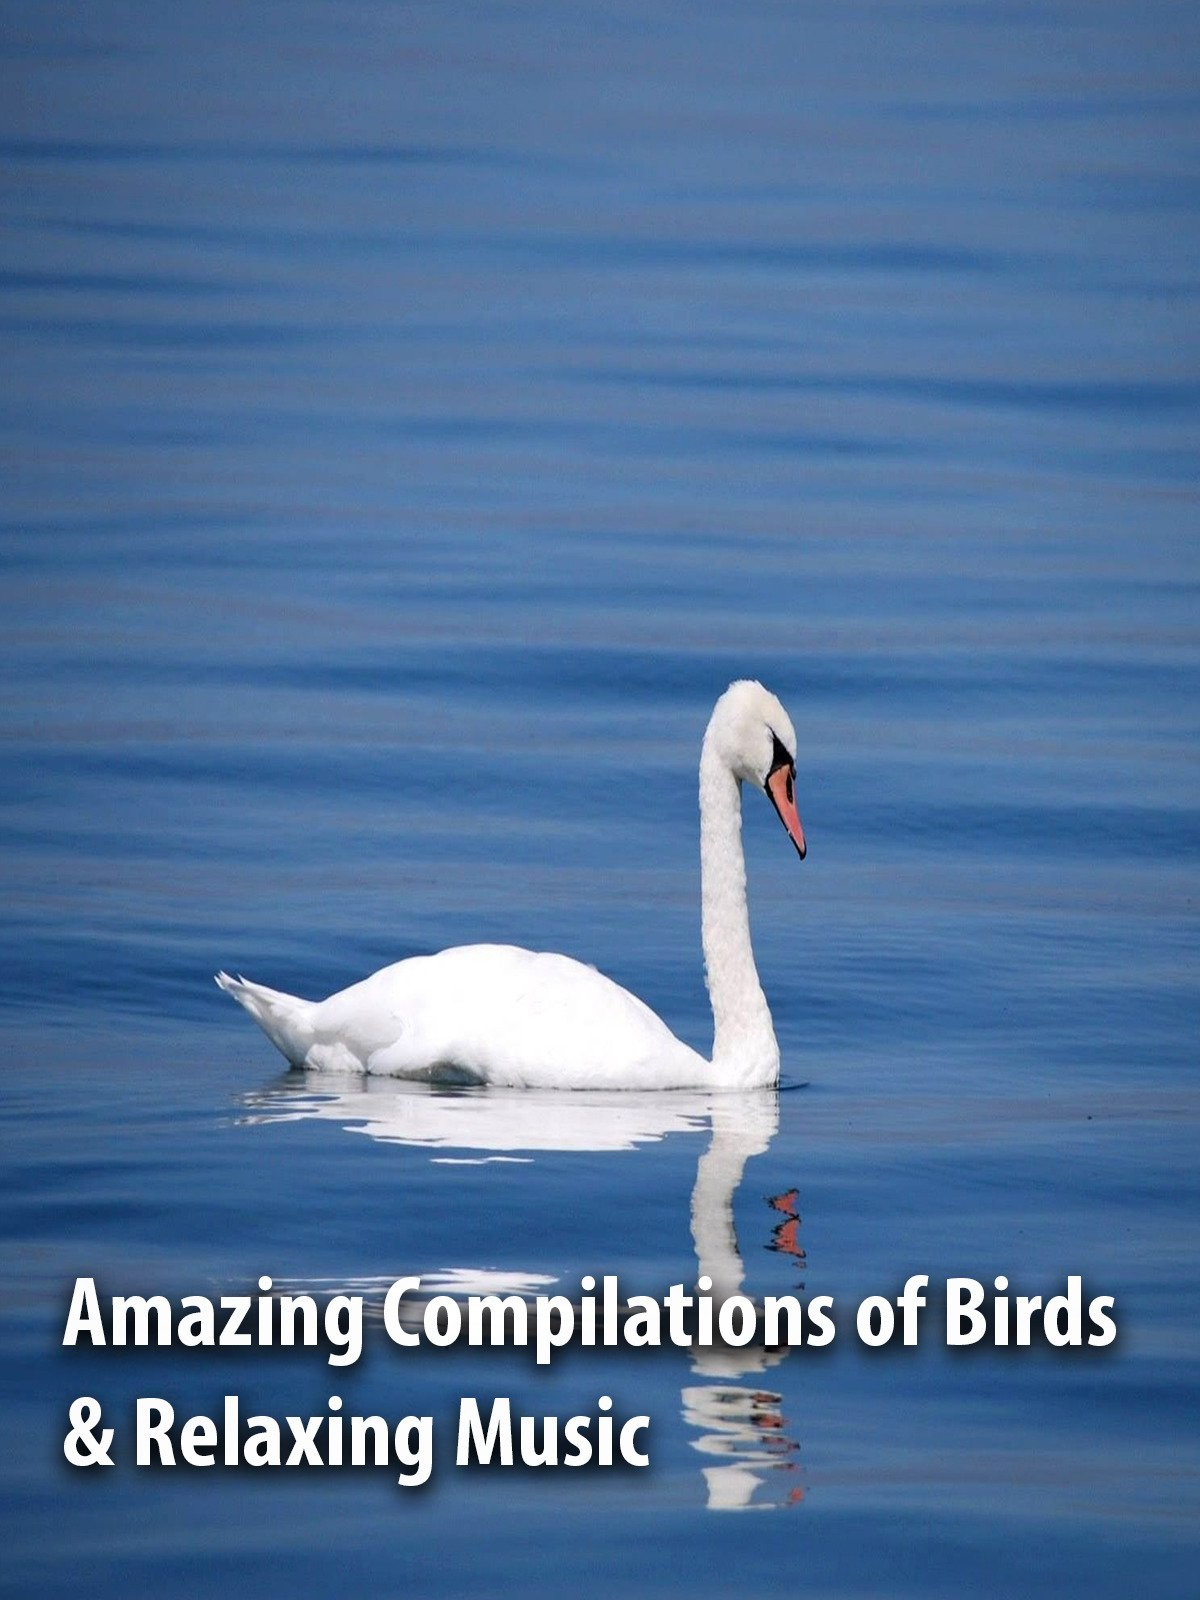 Amazing Compilations of Birds & Relaxing Music